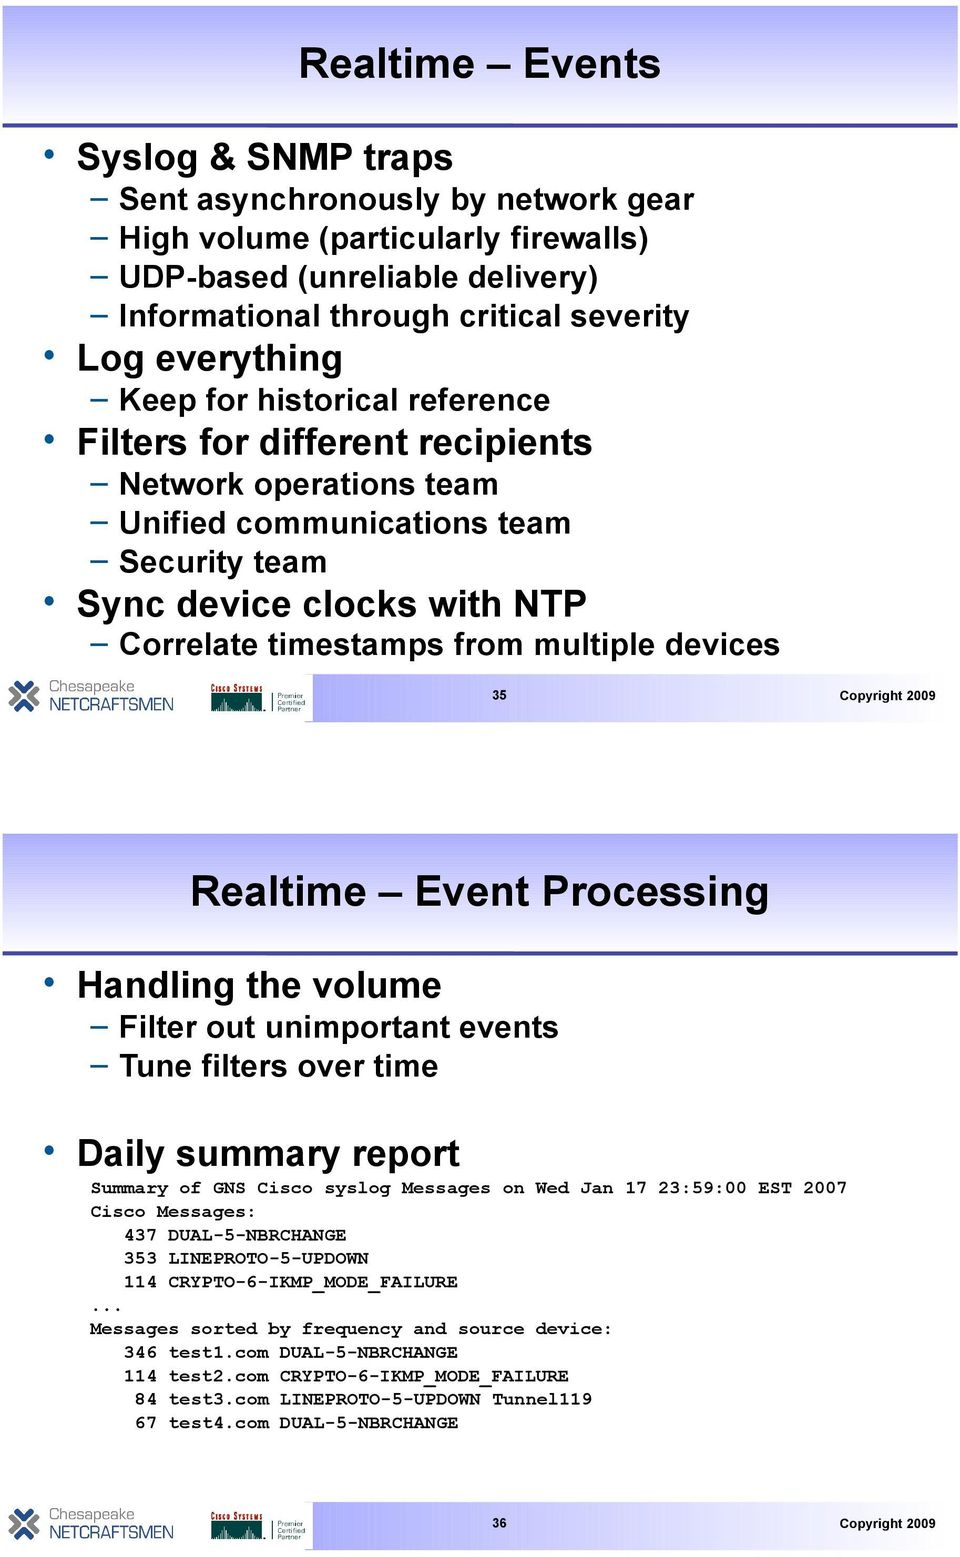 35 Realtime Event Processing Handling the volume Filter out unimportant events Tune filters over time Daily summary report Summary of GNS Cisco syslog Messages on Wed Jan 17 23:59:00 EST 2007 Cisco